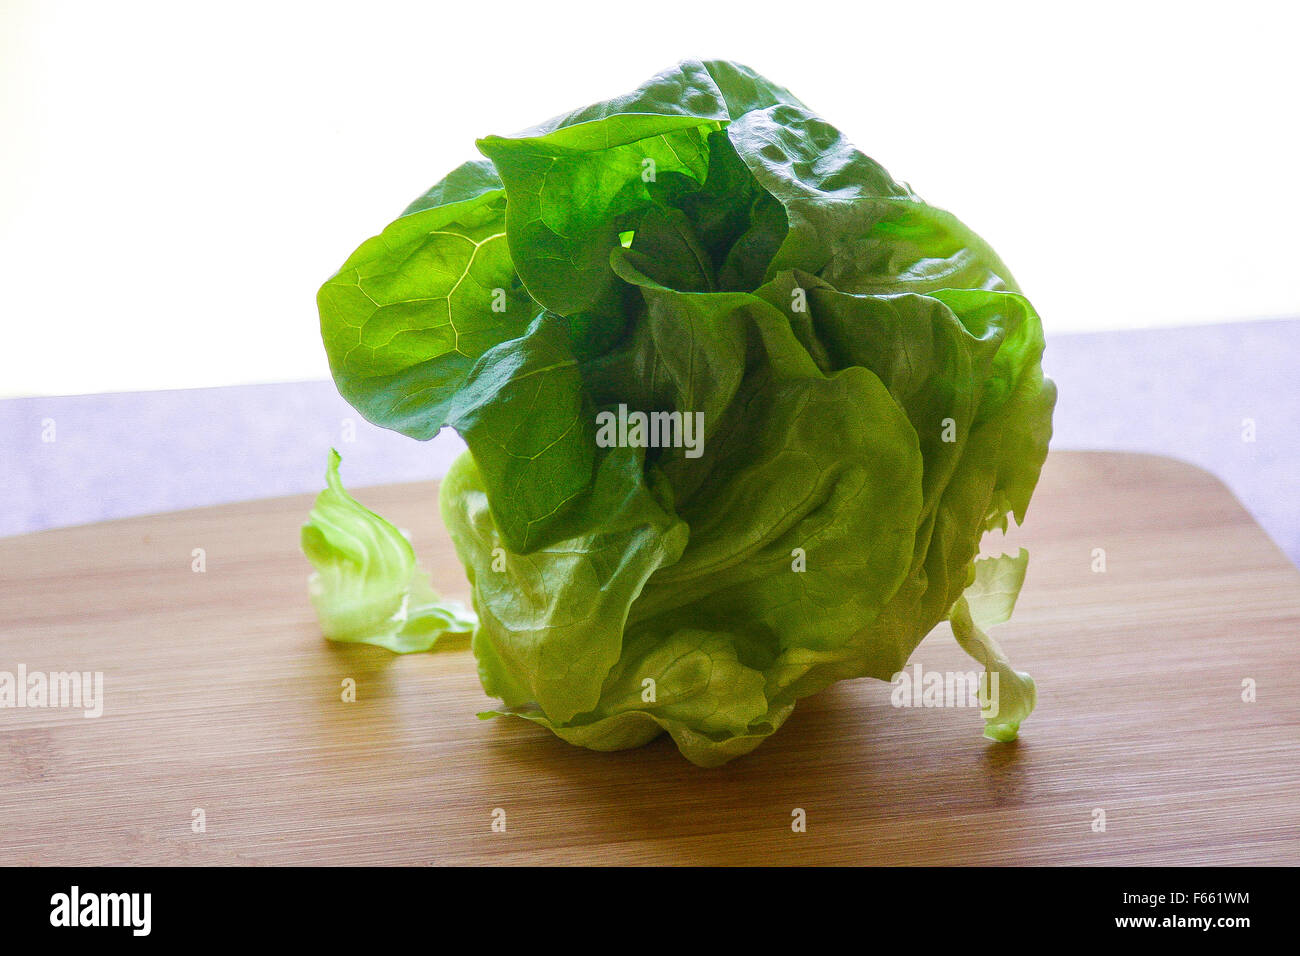 Salad ingredients, lettuce, backlit on granite cutting board on a cutting board - Stock Image